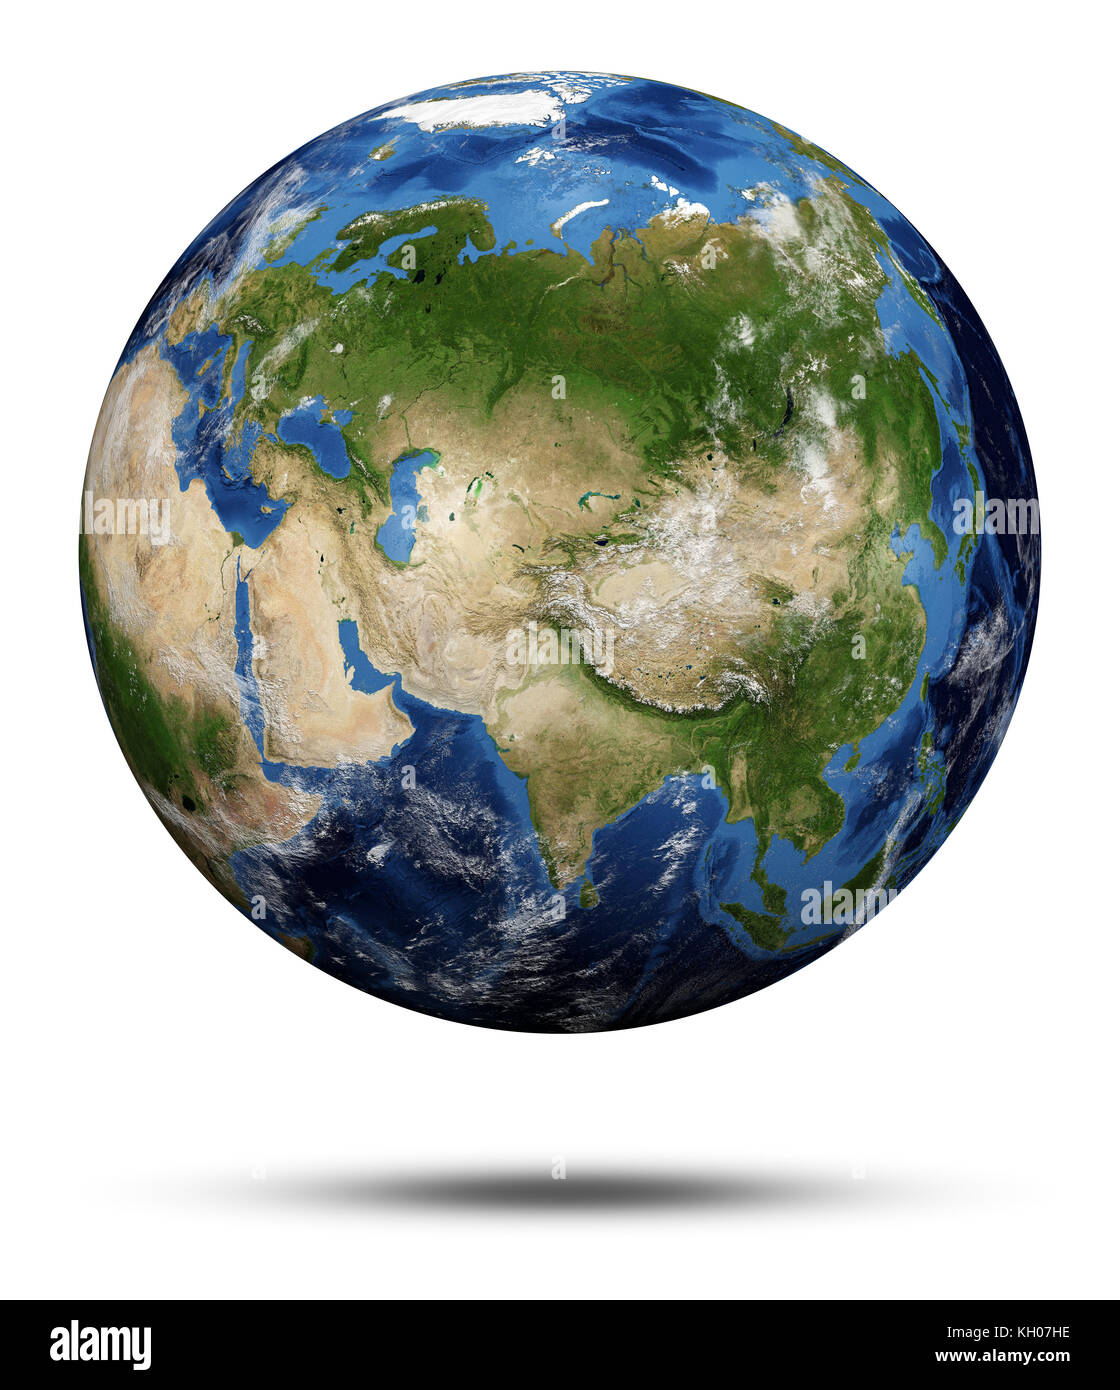 Planet Earth. Earth globe 3d rendering, maps courtesy of NASA - Stock Image